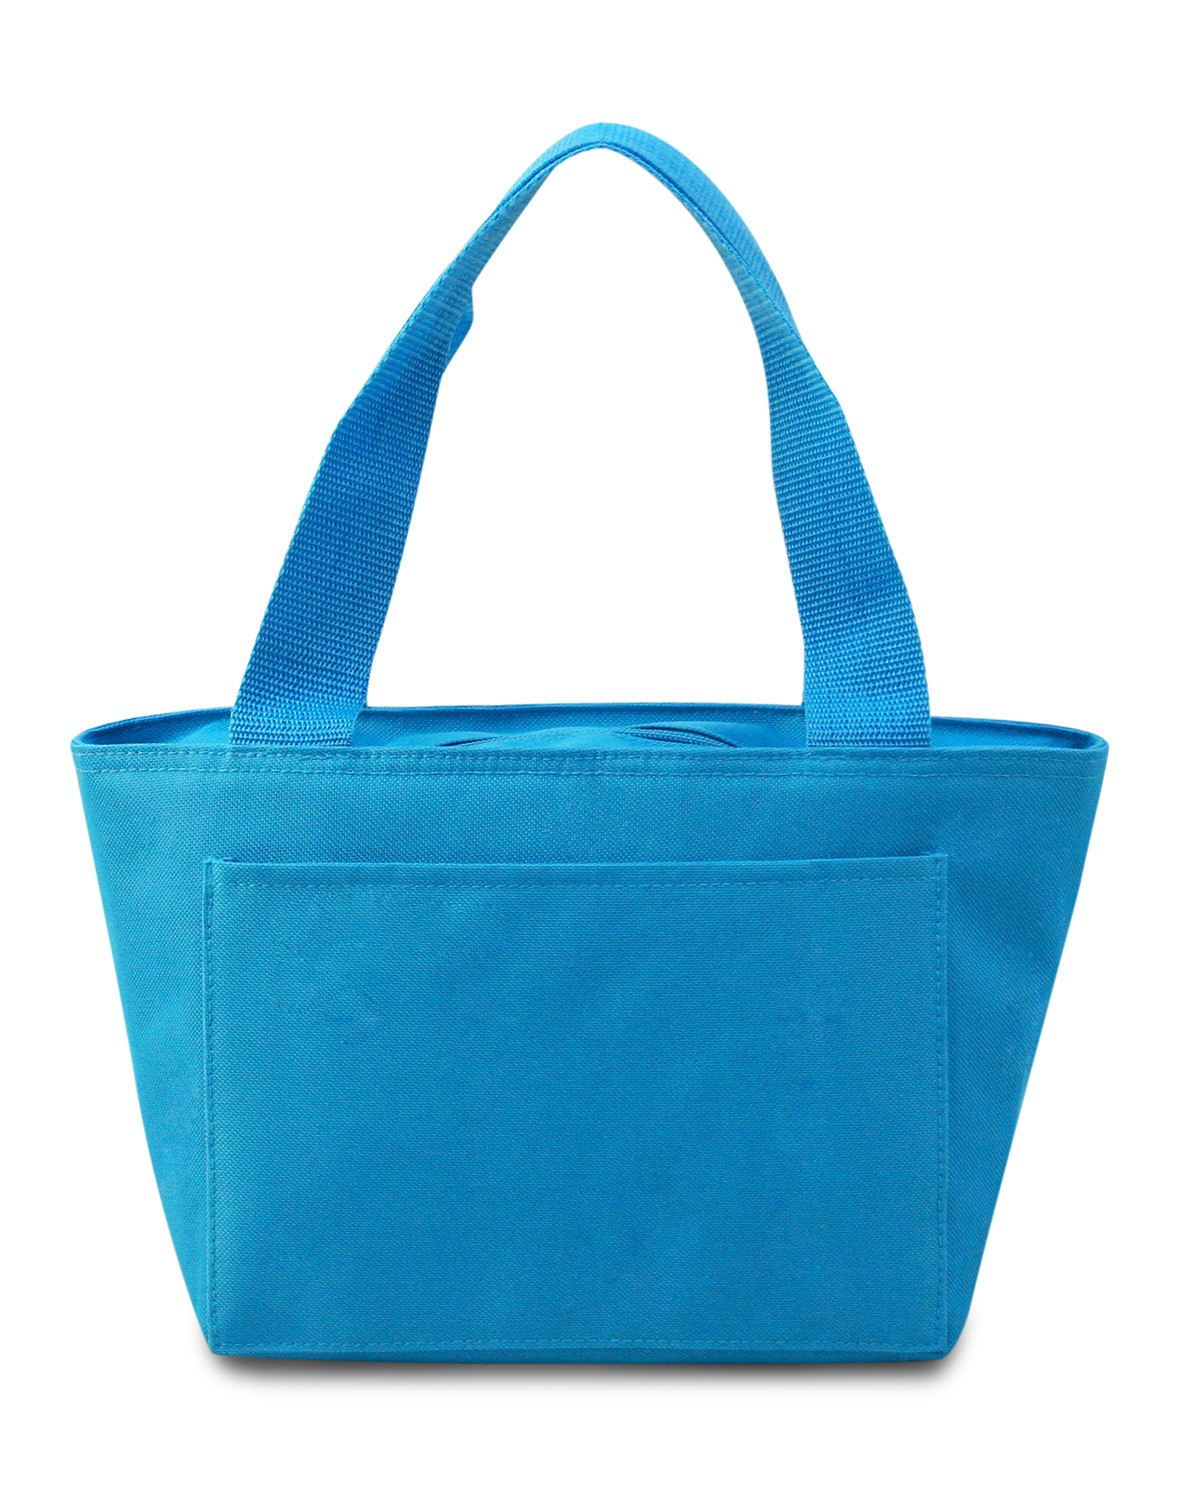 8808 Liberty Bags TURQUOISE